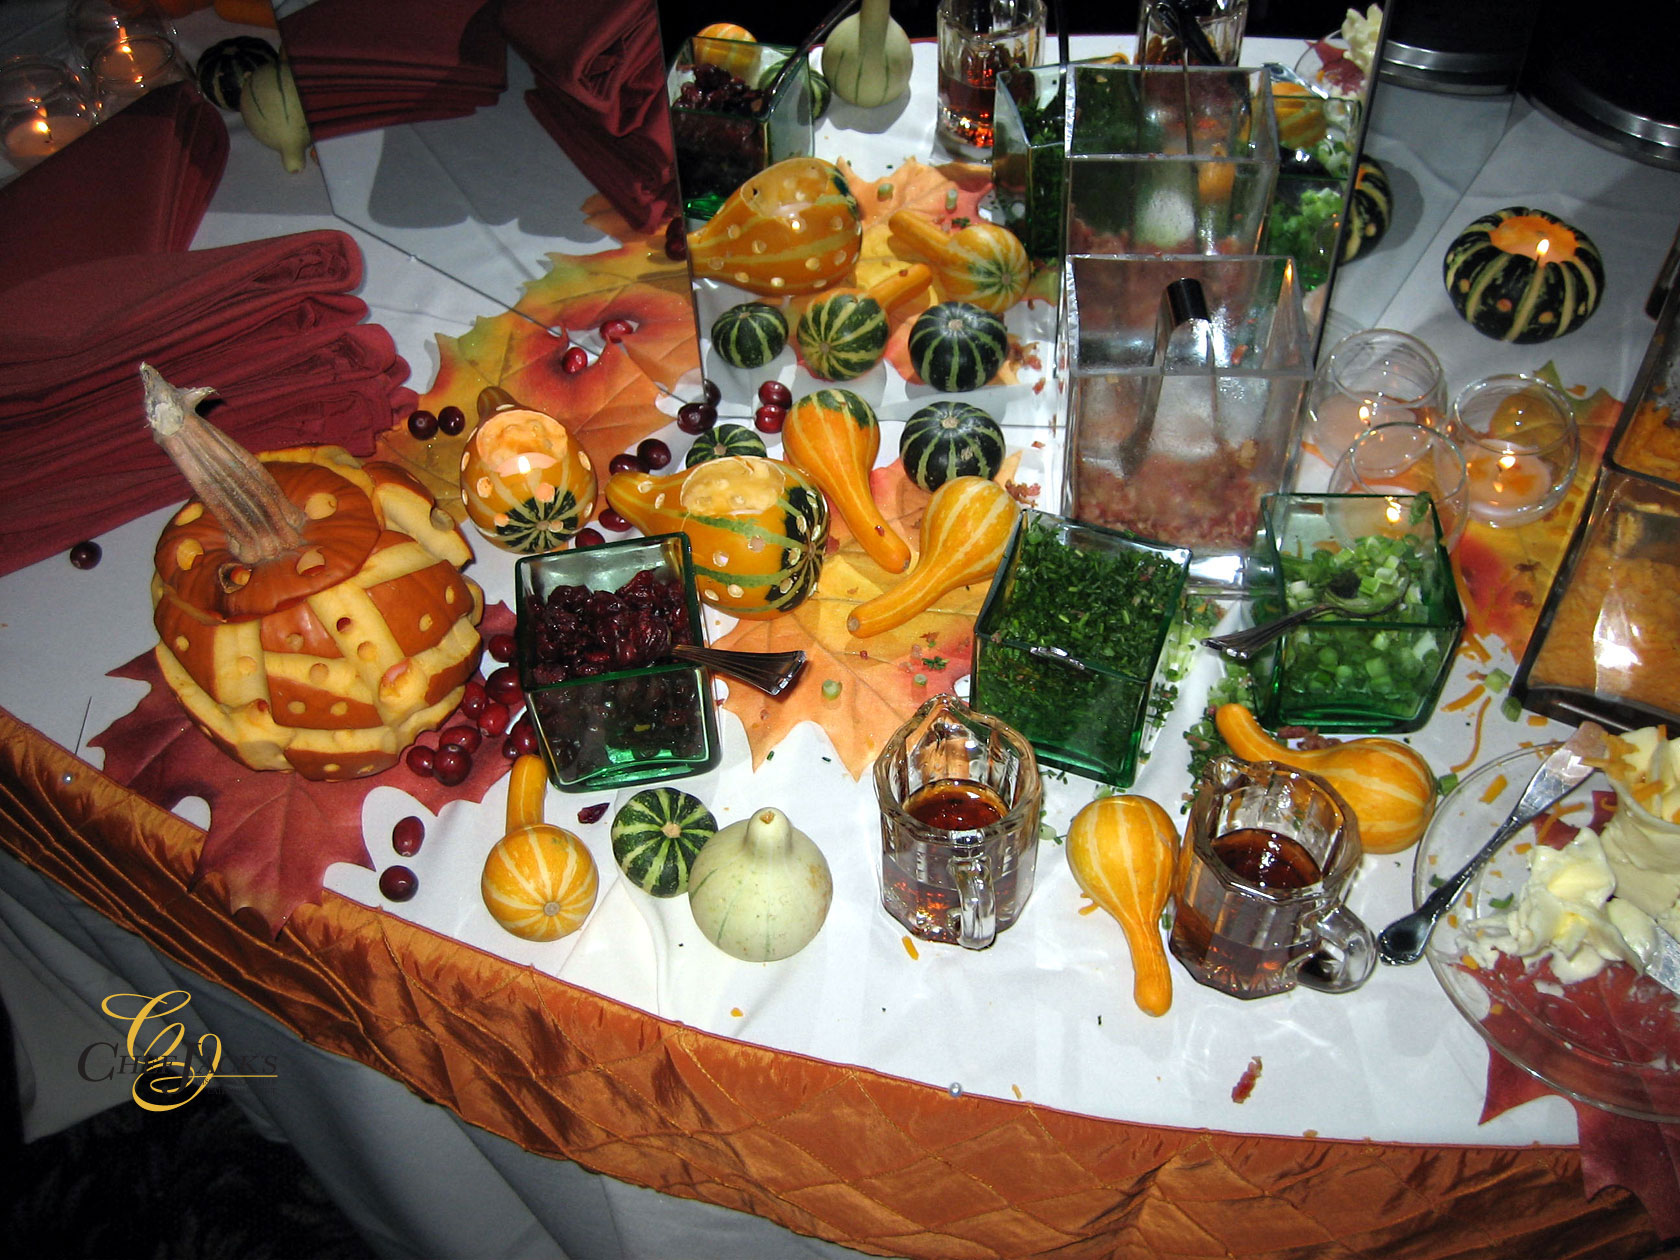 Milwaukee Catering for your Wedding. Autumn Wedding Menu Ideas that will inspire. Contact Chef Jack